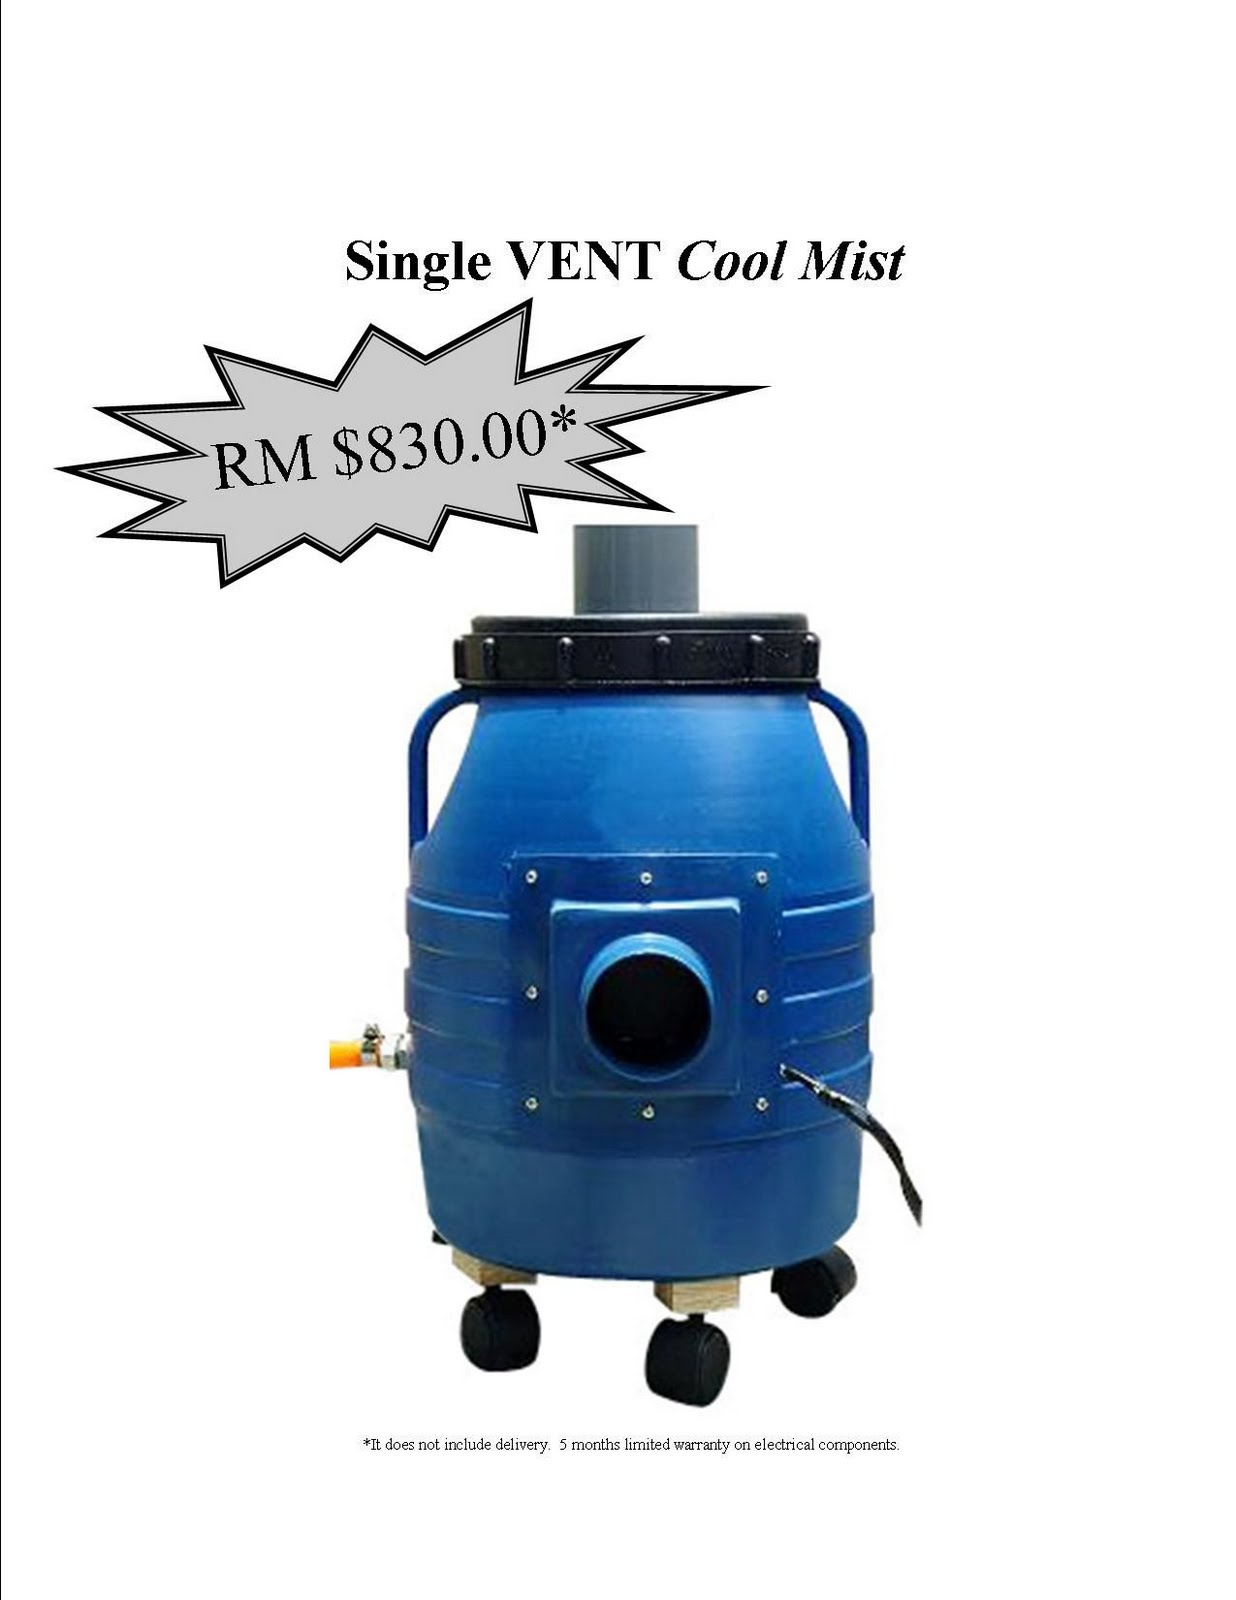 Ultrasonic Humidifier Single Vent Cool Mist (For Swiftlet House Use) #1D6DAE